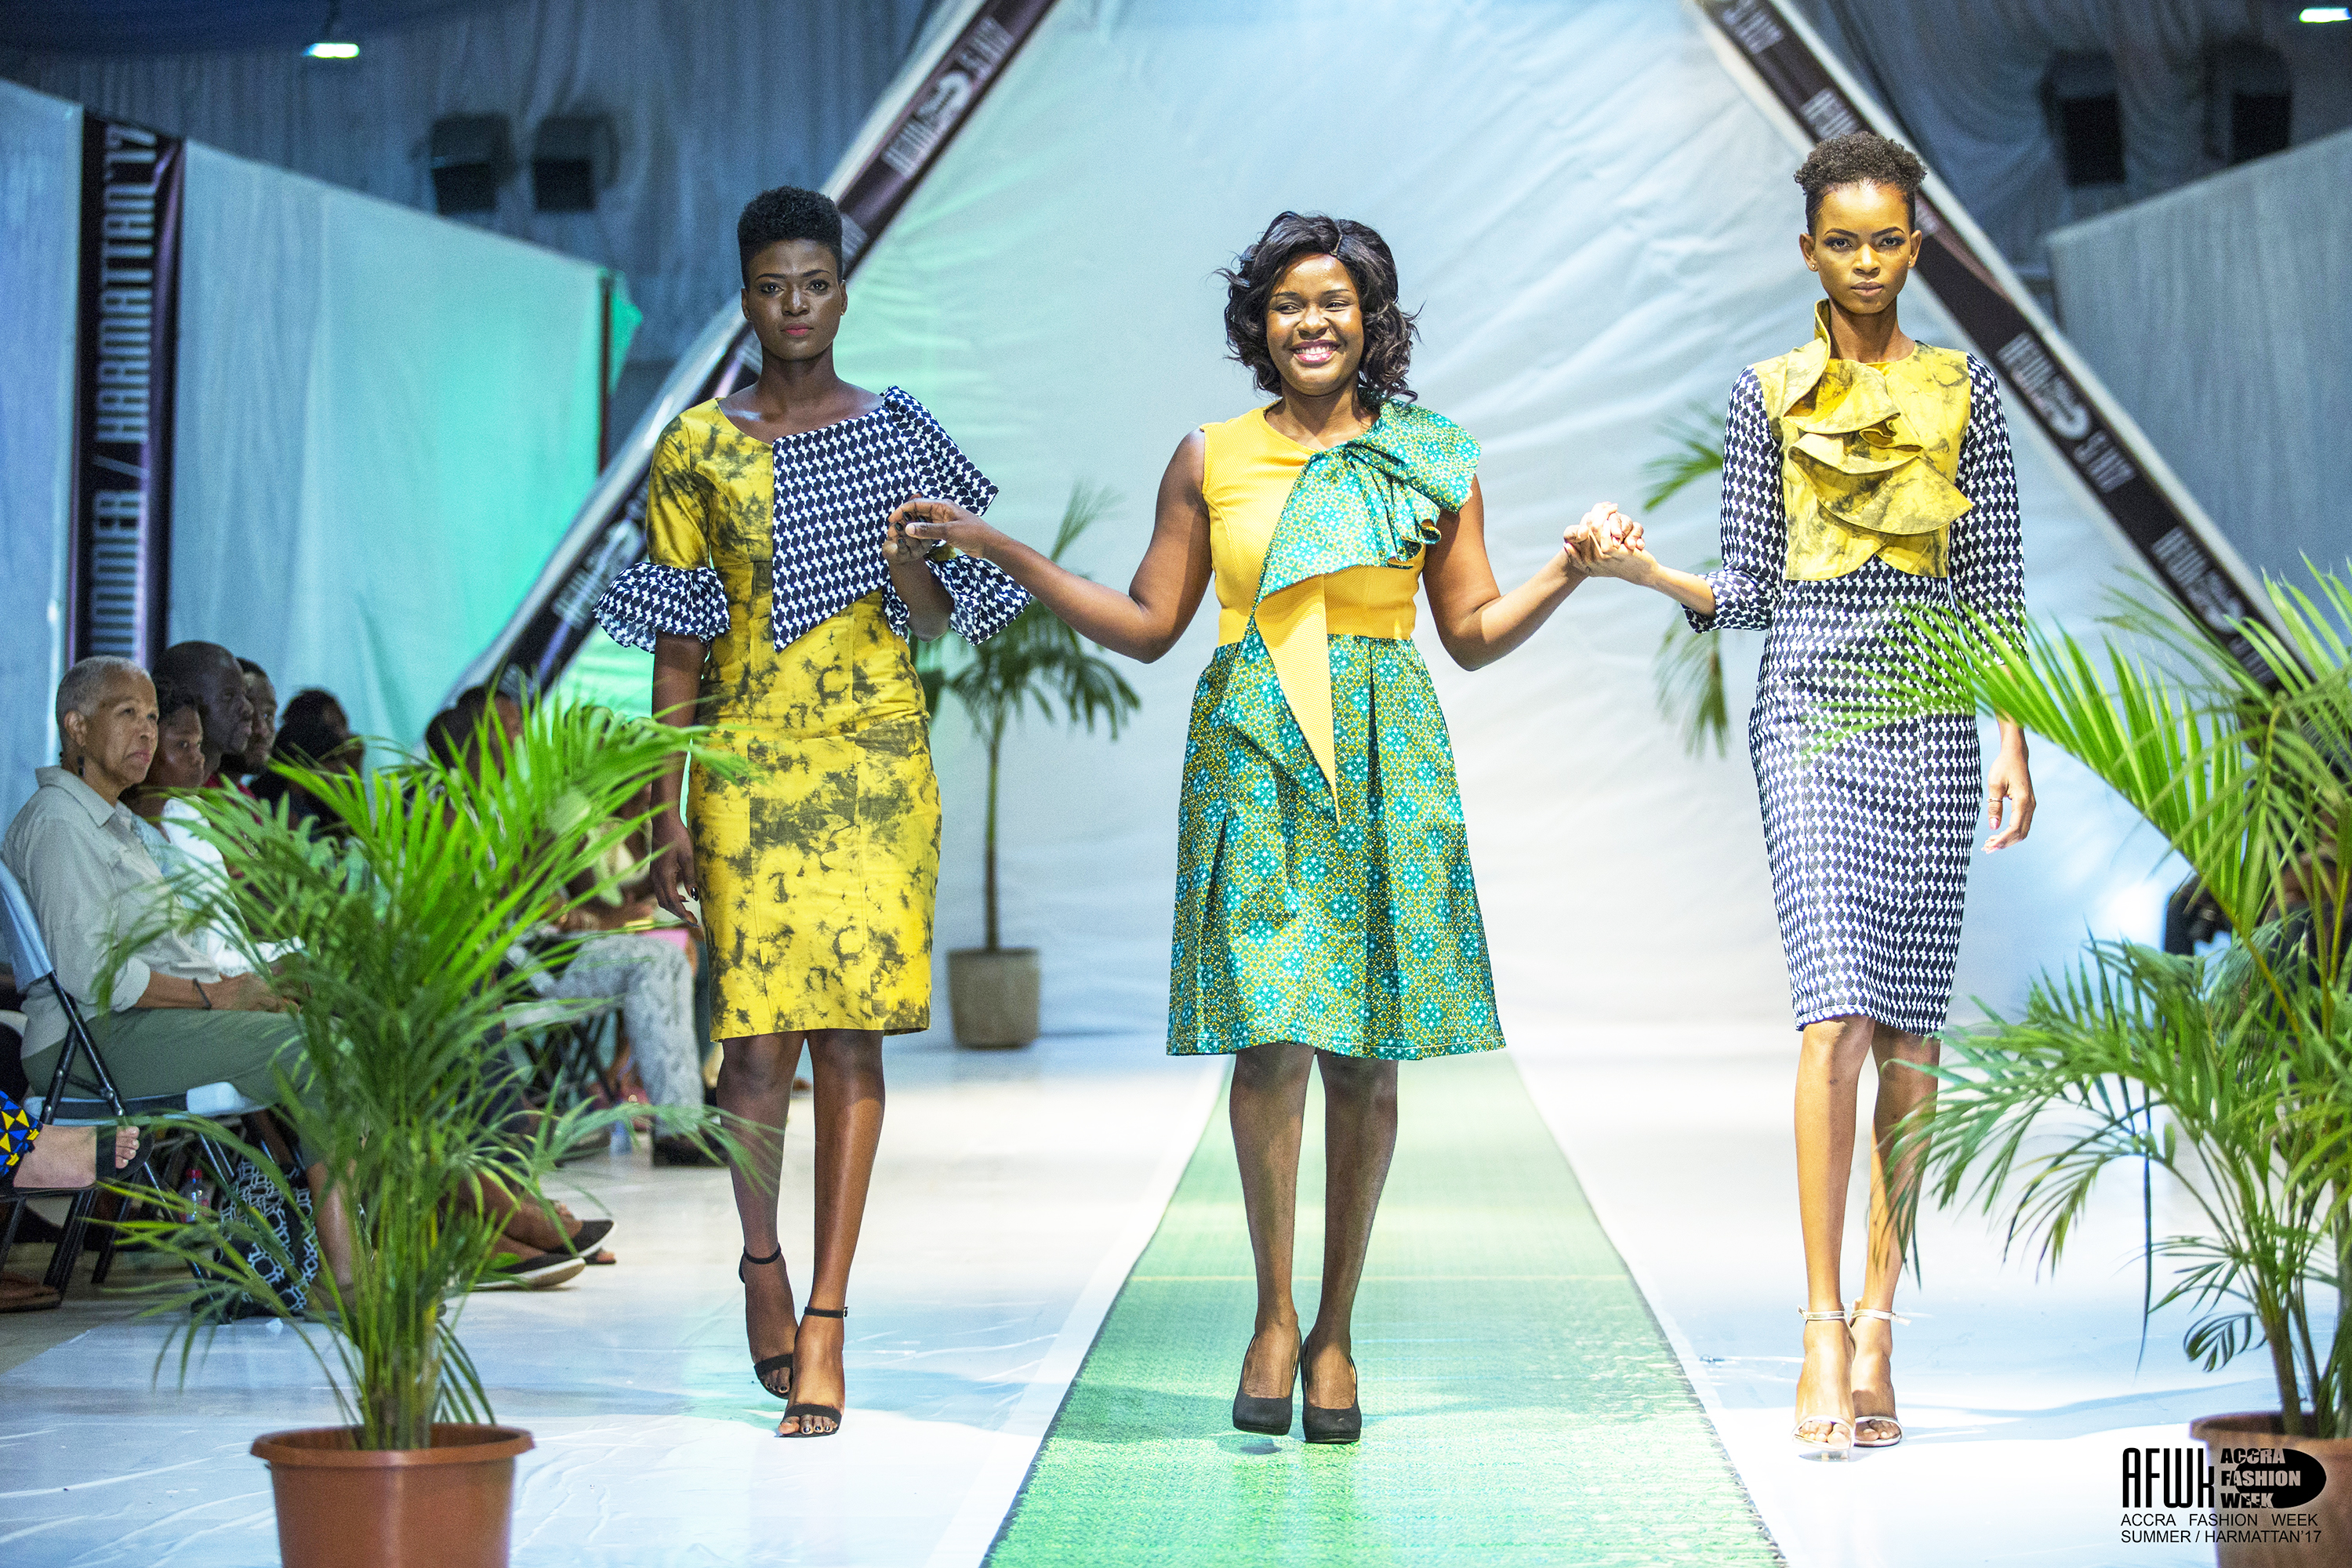 Step Out Designs Ghana Accra Fashion Week S H17 Accra Fashion Week Ghana S Premium Clothing Trade Event